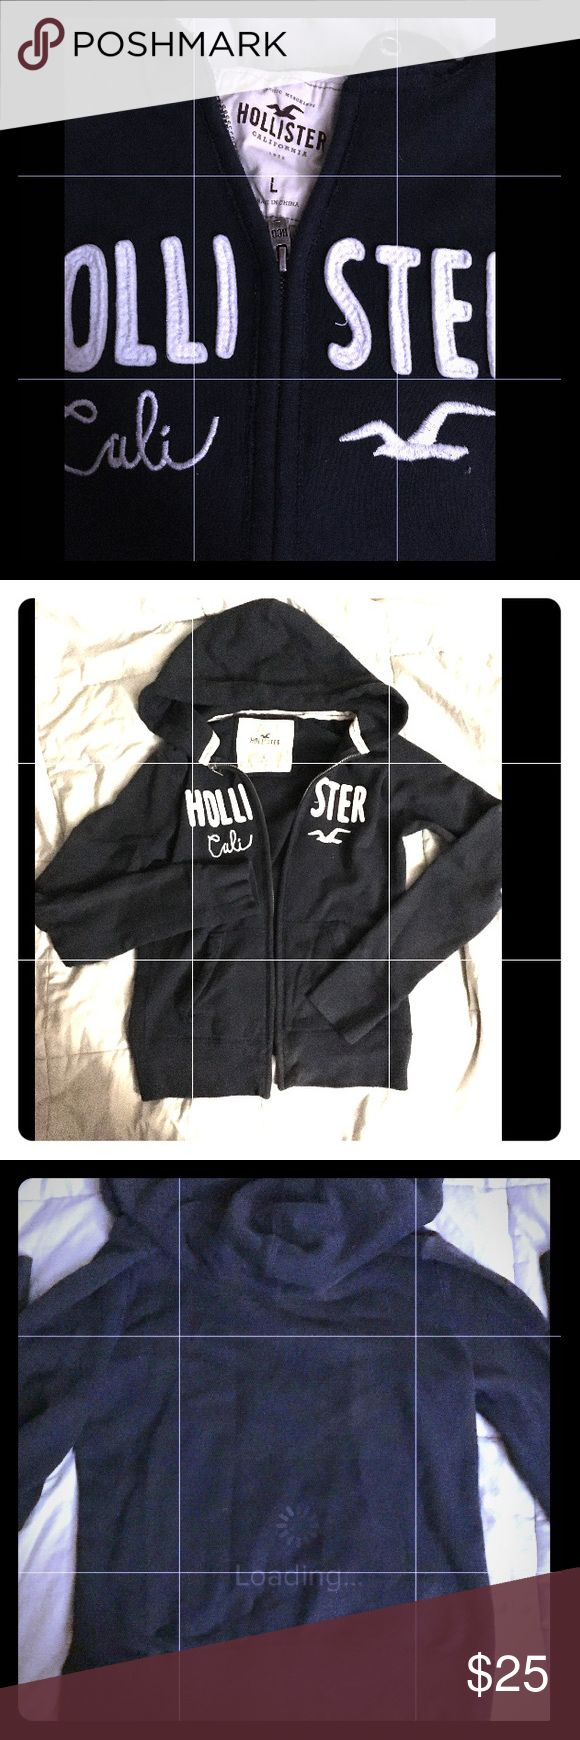 Hollister Navy Blue Zip Up Hoodie L Hollister Navy Blue Zip Up Hoodie, size L, Like New Perfect condition, worn once & washed in woolite. Soft! Hollister Jackets & Coats